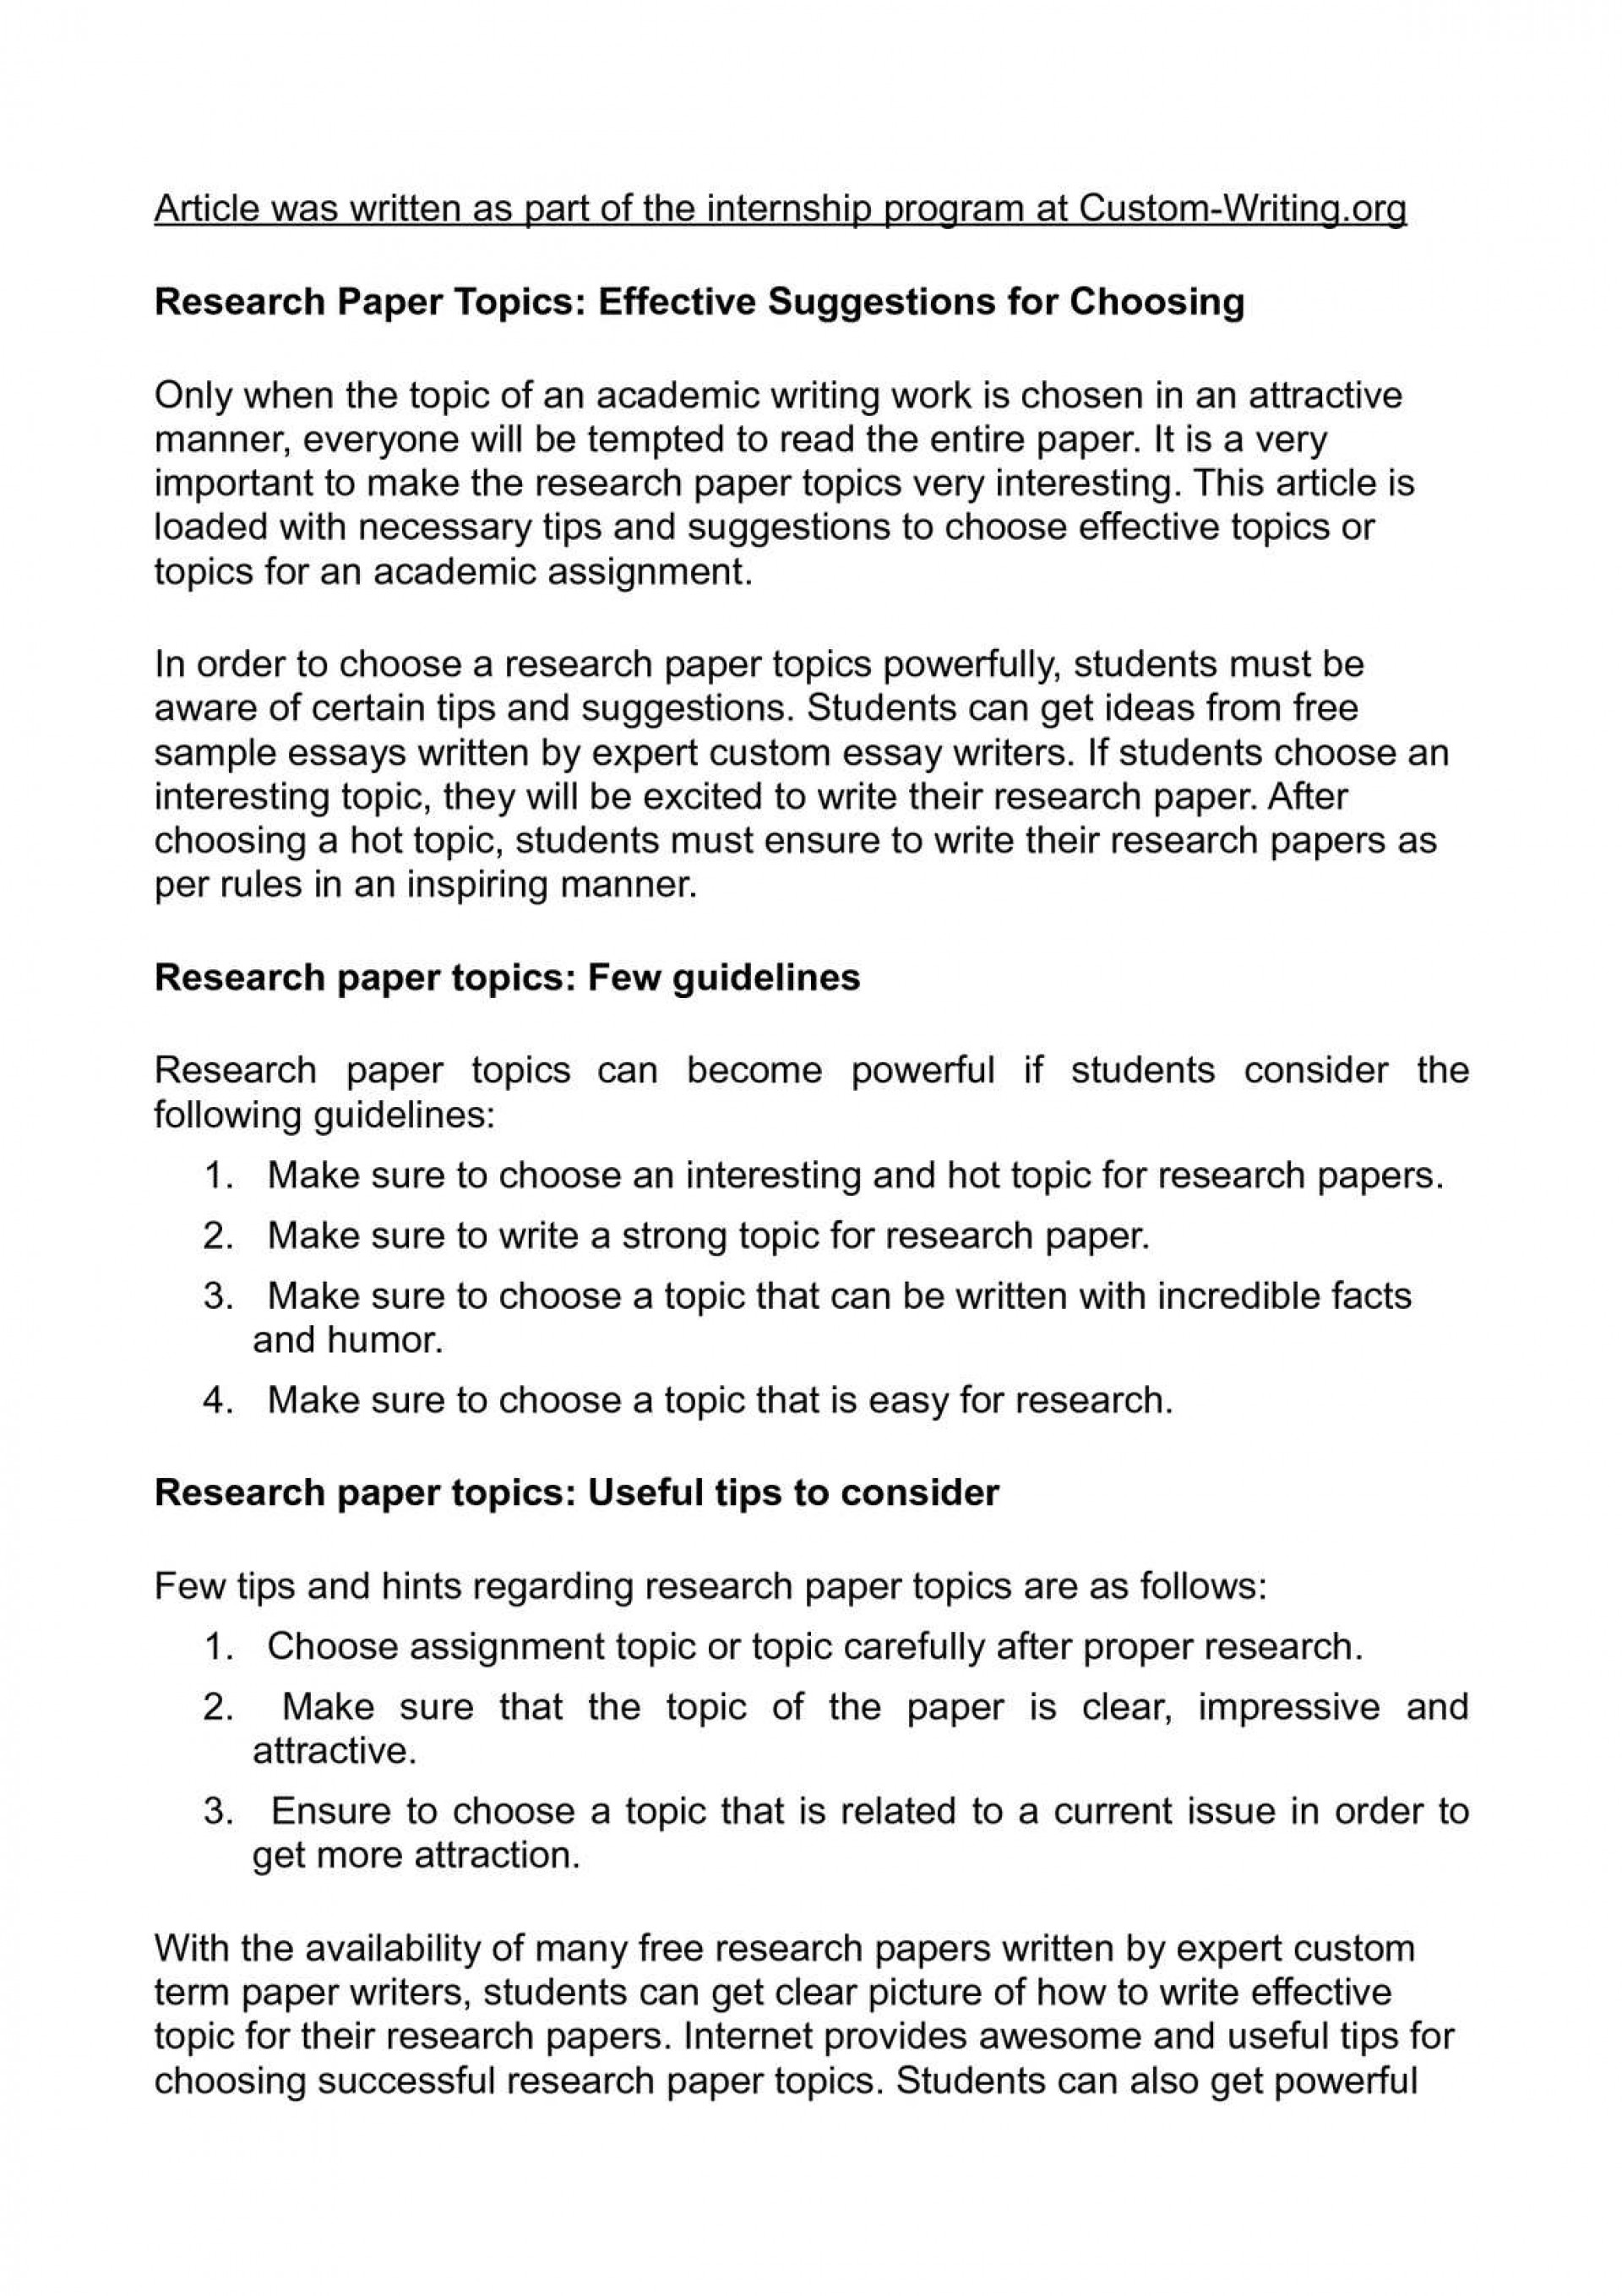 016 Easy Research Paper Topics Fantastic For High School Students Reddit To Write About 1920